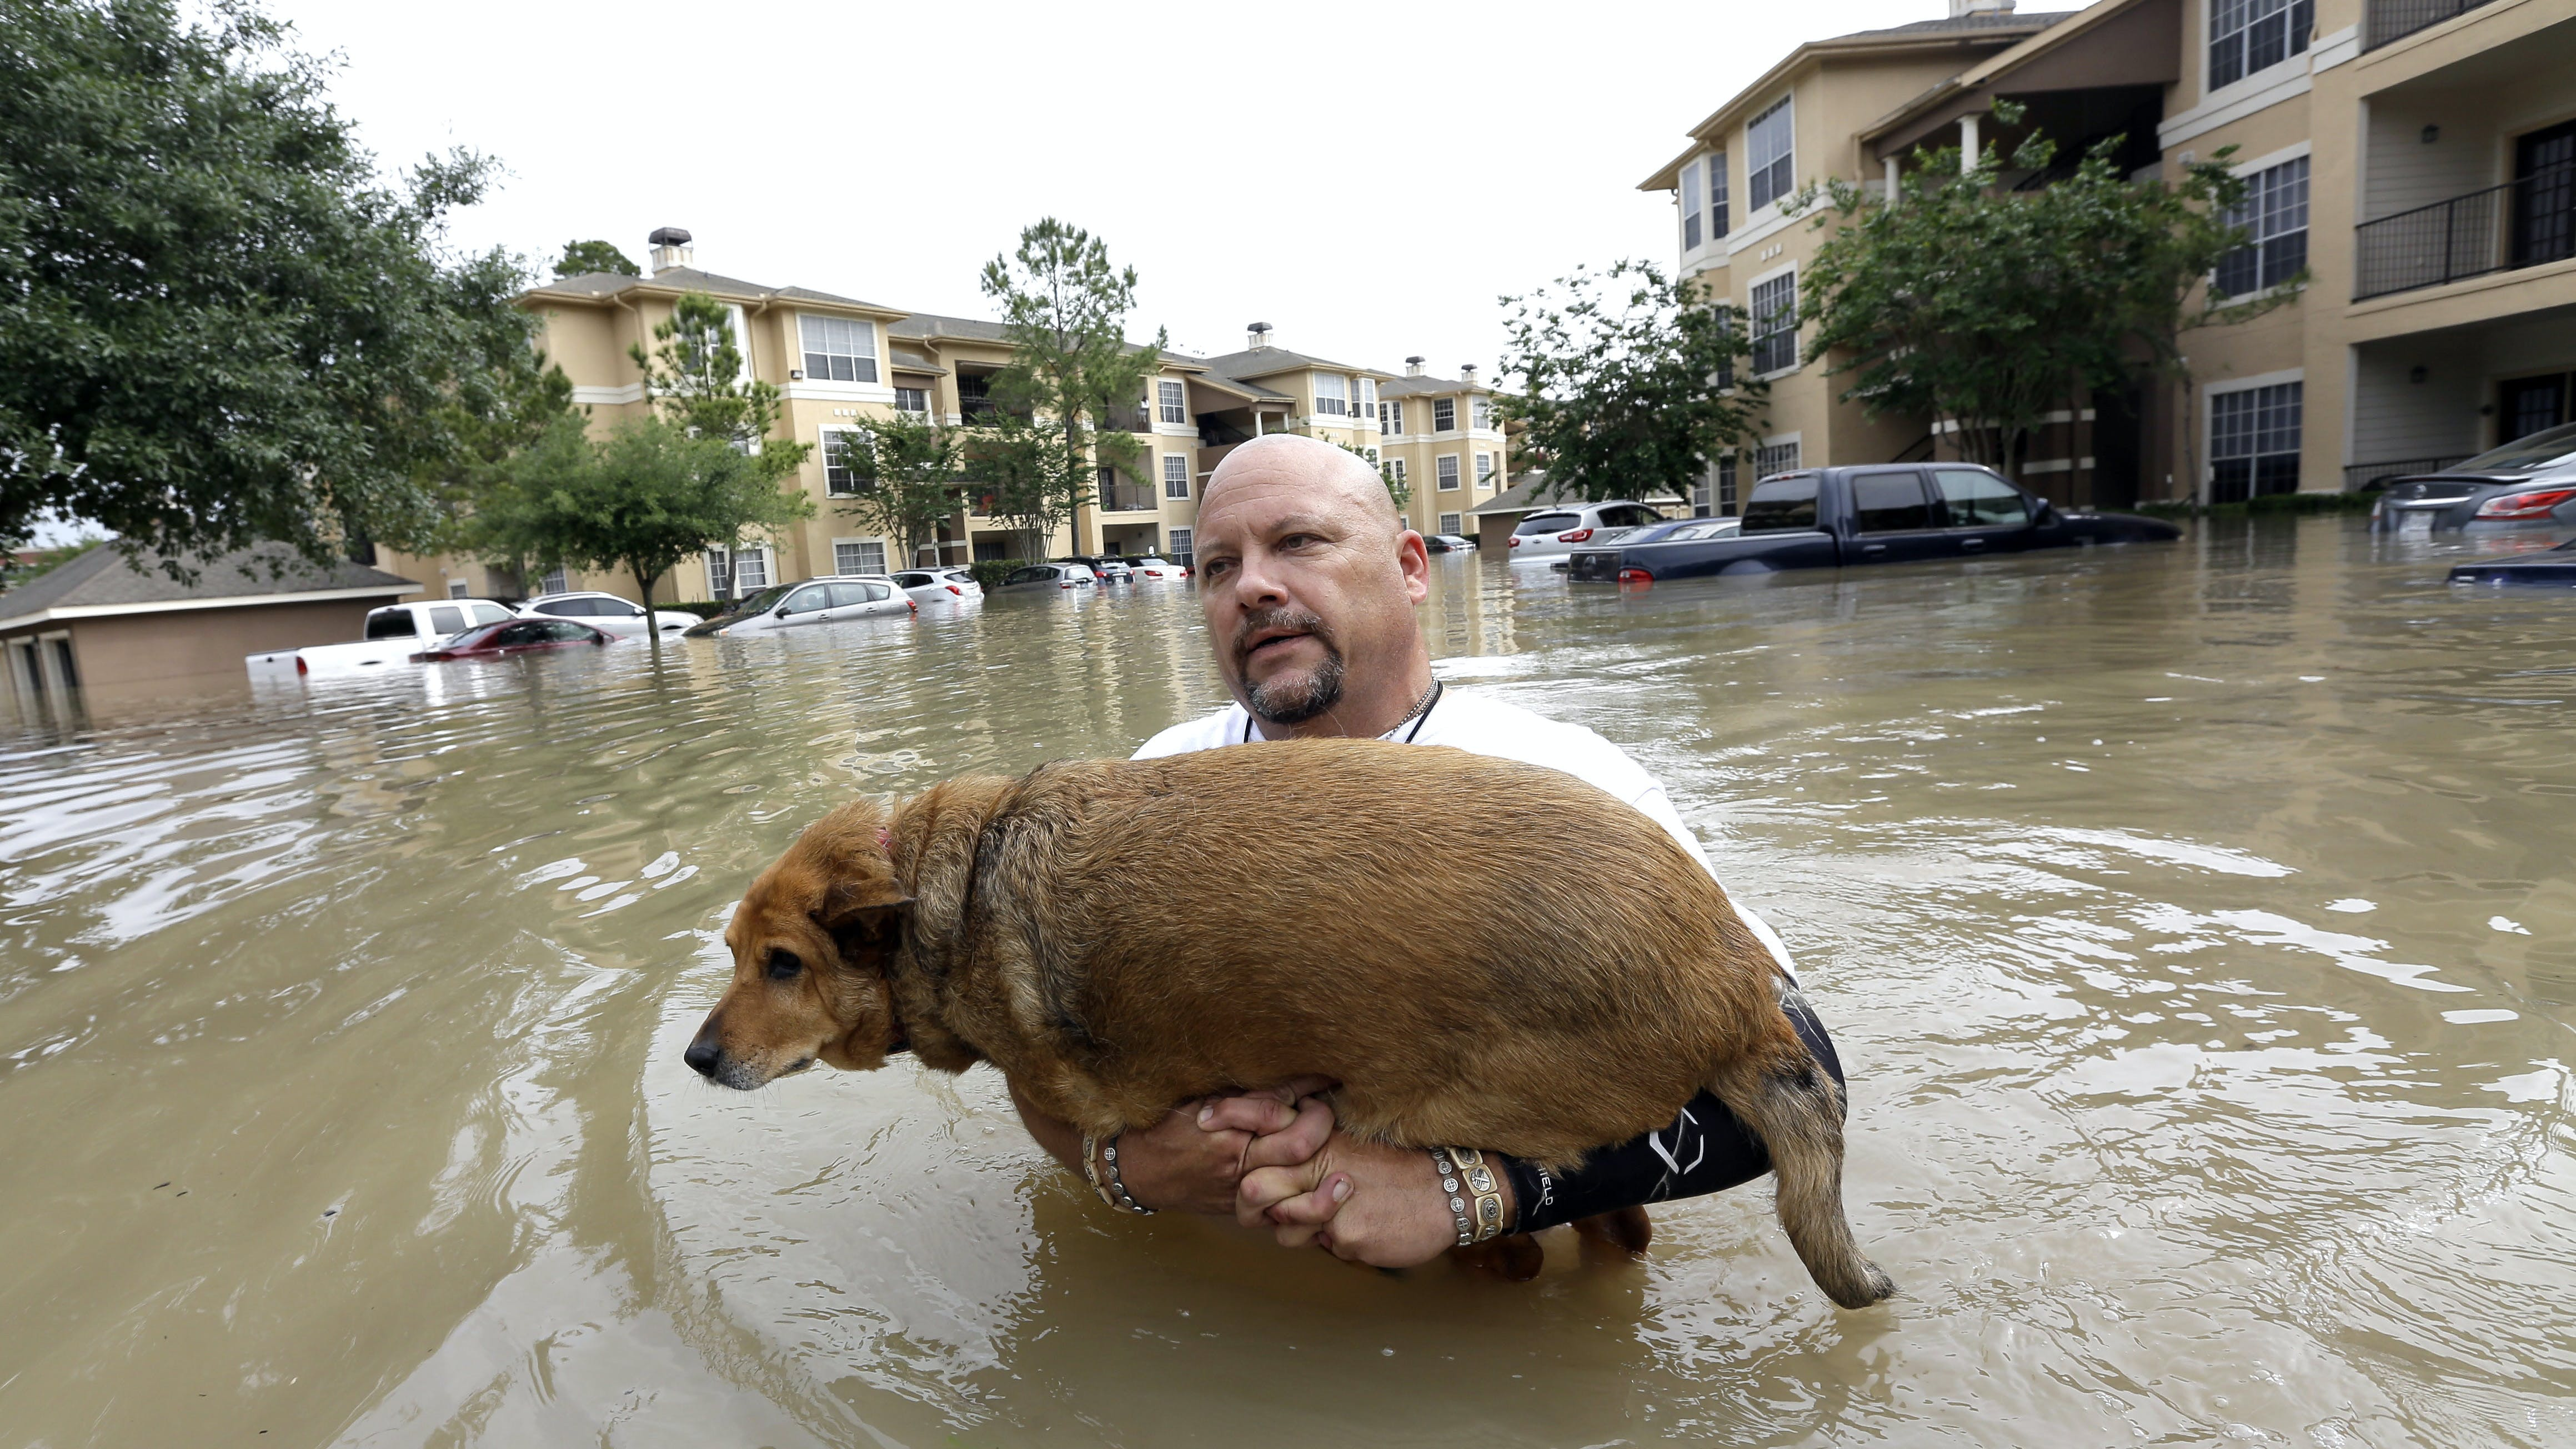 Louis Marquez carries his dog Chocolate through floodwaters after rescuing the dog from his flooded apartment Tuesday, April 19, 2016, in Houston. Storms have dumped more than a foot of rain in the Houston area, flooding dozens of neighborhoods.